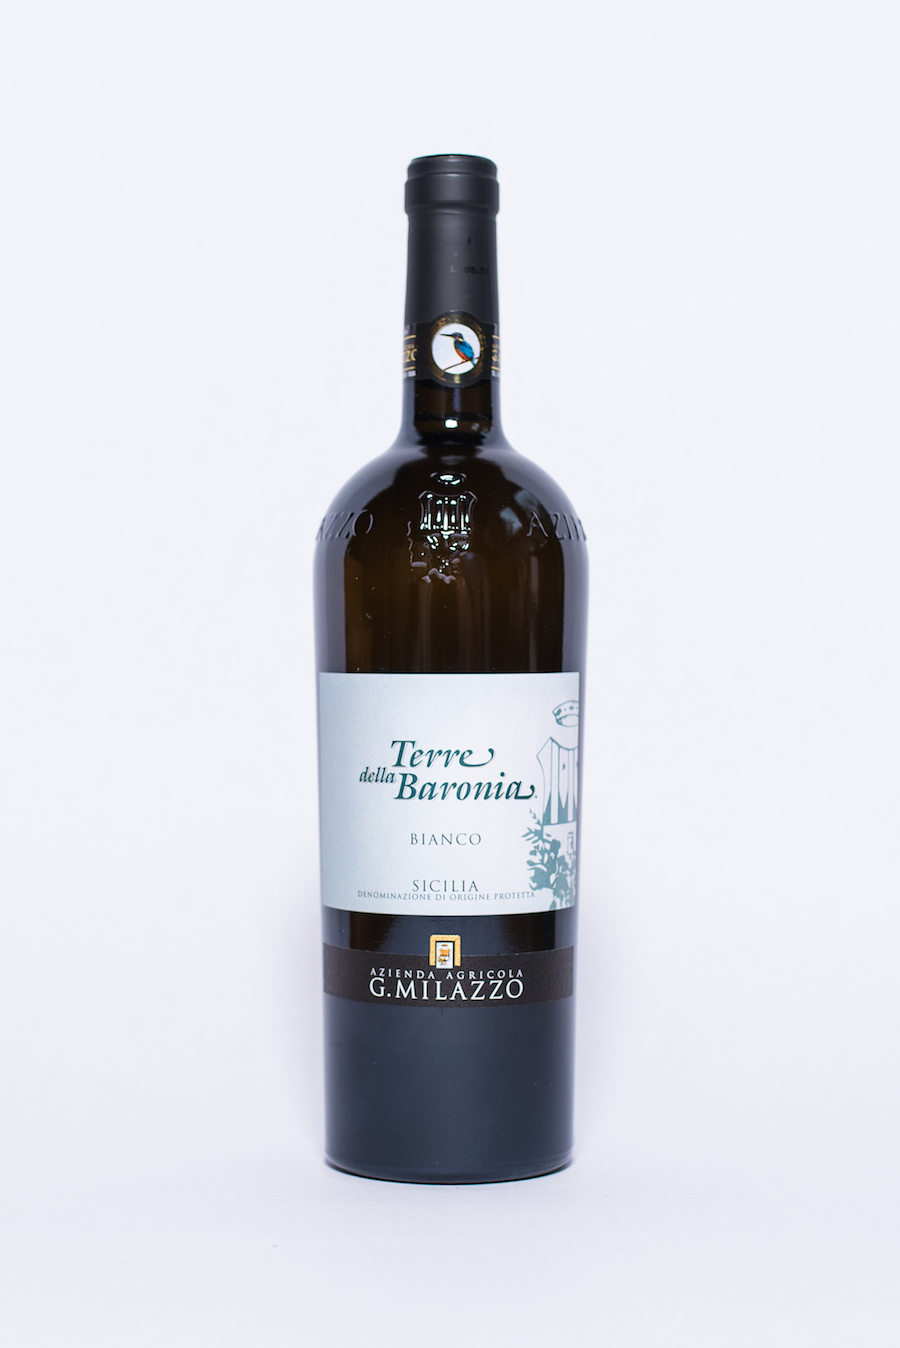 Terre della Baronia Bianco 2016    Producer:   Azienda Agricola G. Milazzo    Region : Sicily  Grapes:  Catarratto Bianco Lucido  Characteristics:  Delicate perfume of white flowers, grapefruit and golden apple carry through to the palate with relishing fruity notes, good acidity and a persistent mineral finish. An excellent and refreshing food wine.